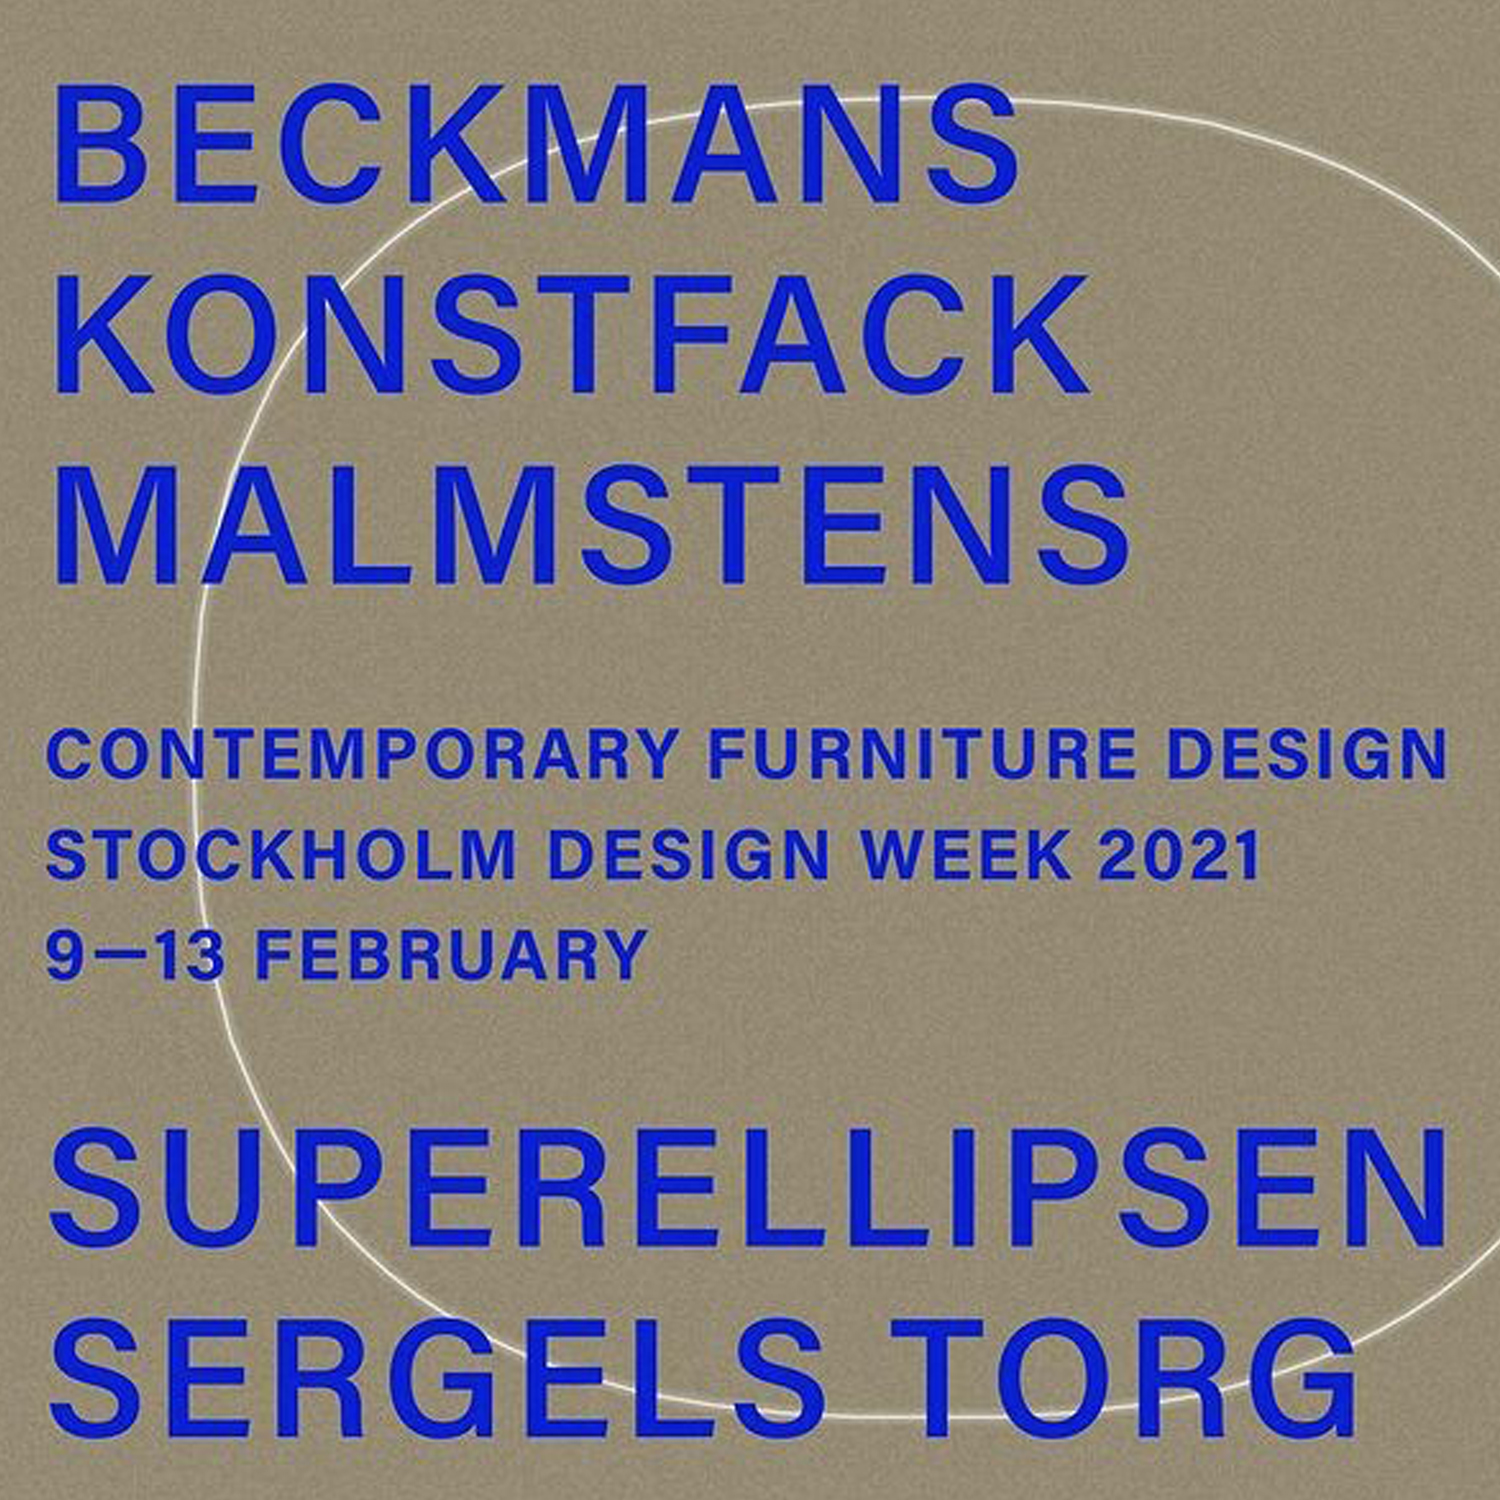 Beckmans/Konstfacks/Malmstens Greenhouse exhibition on the town